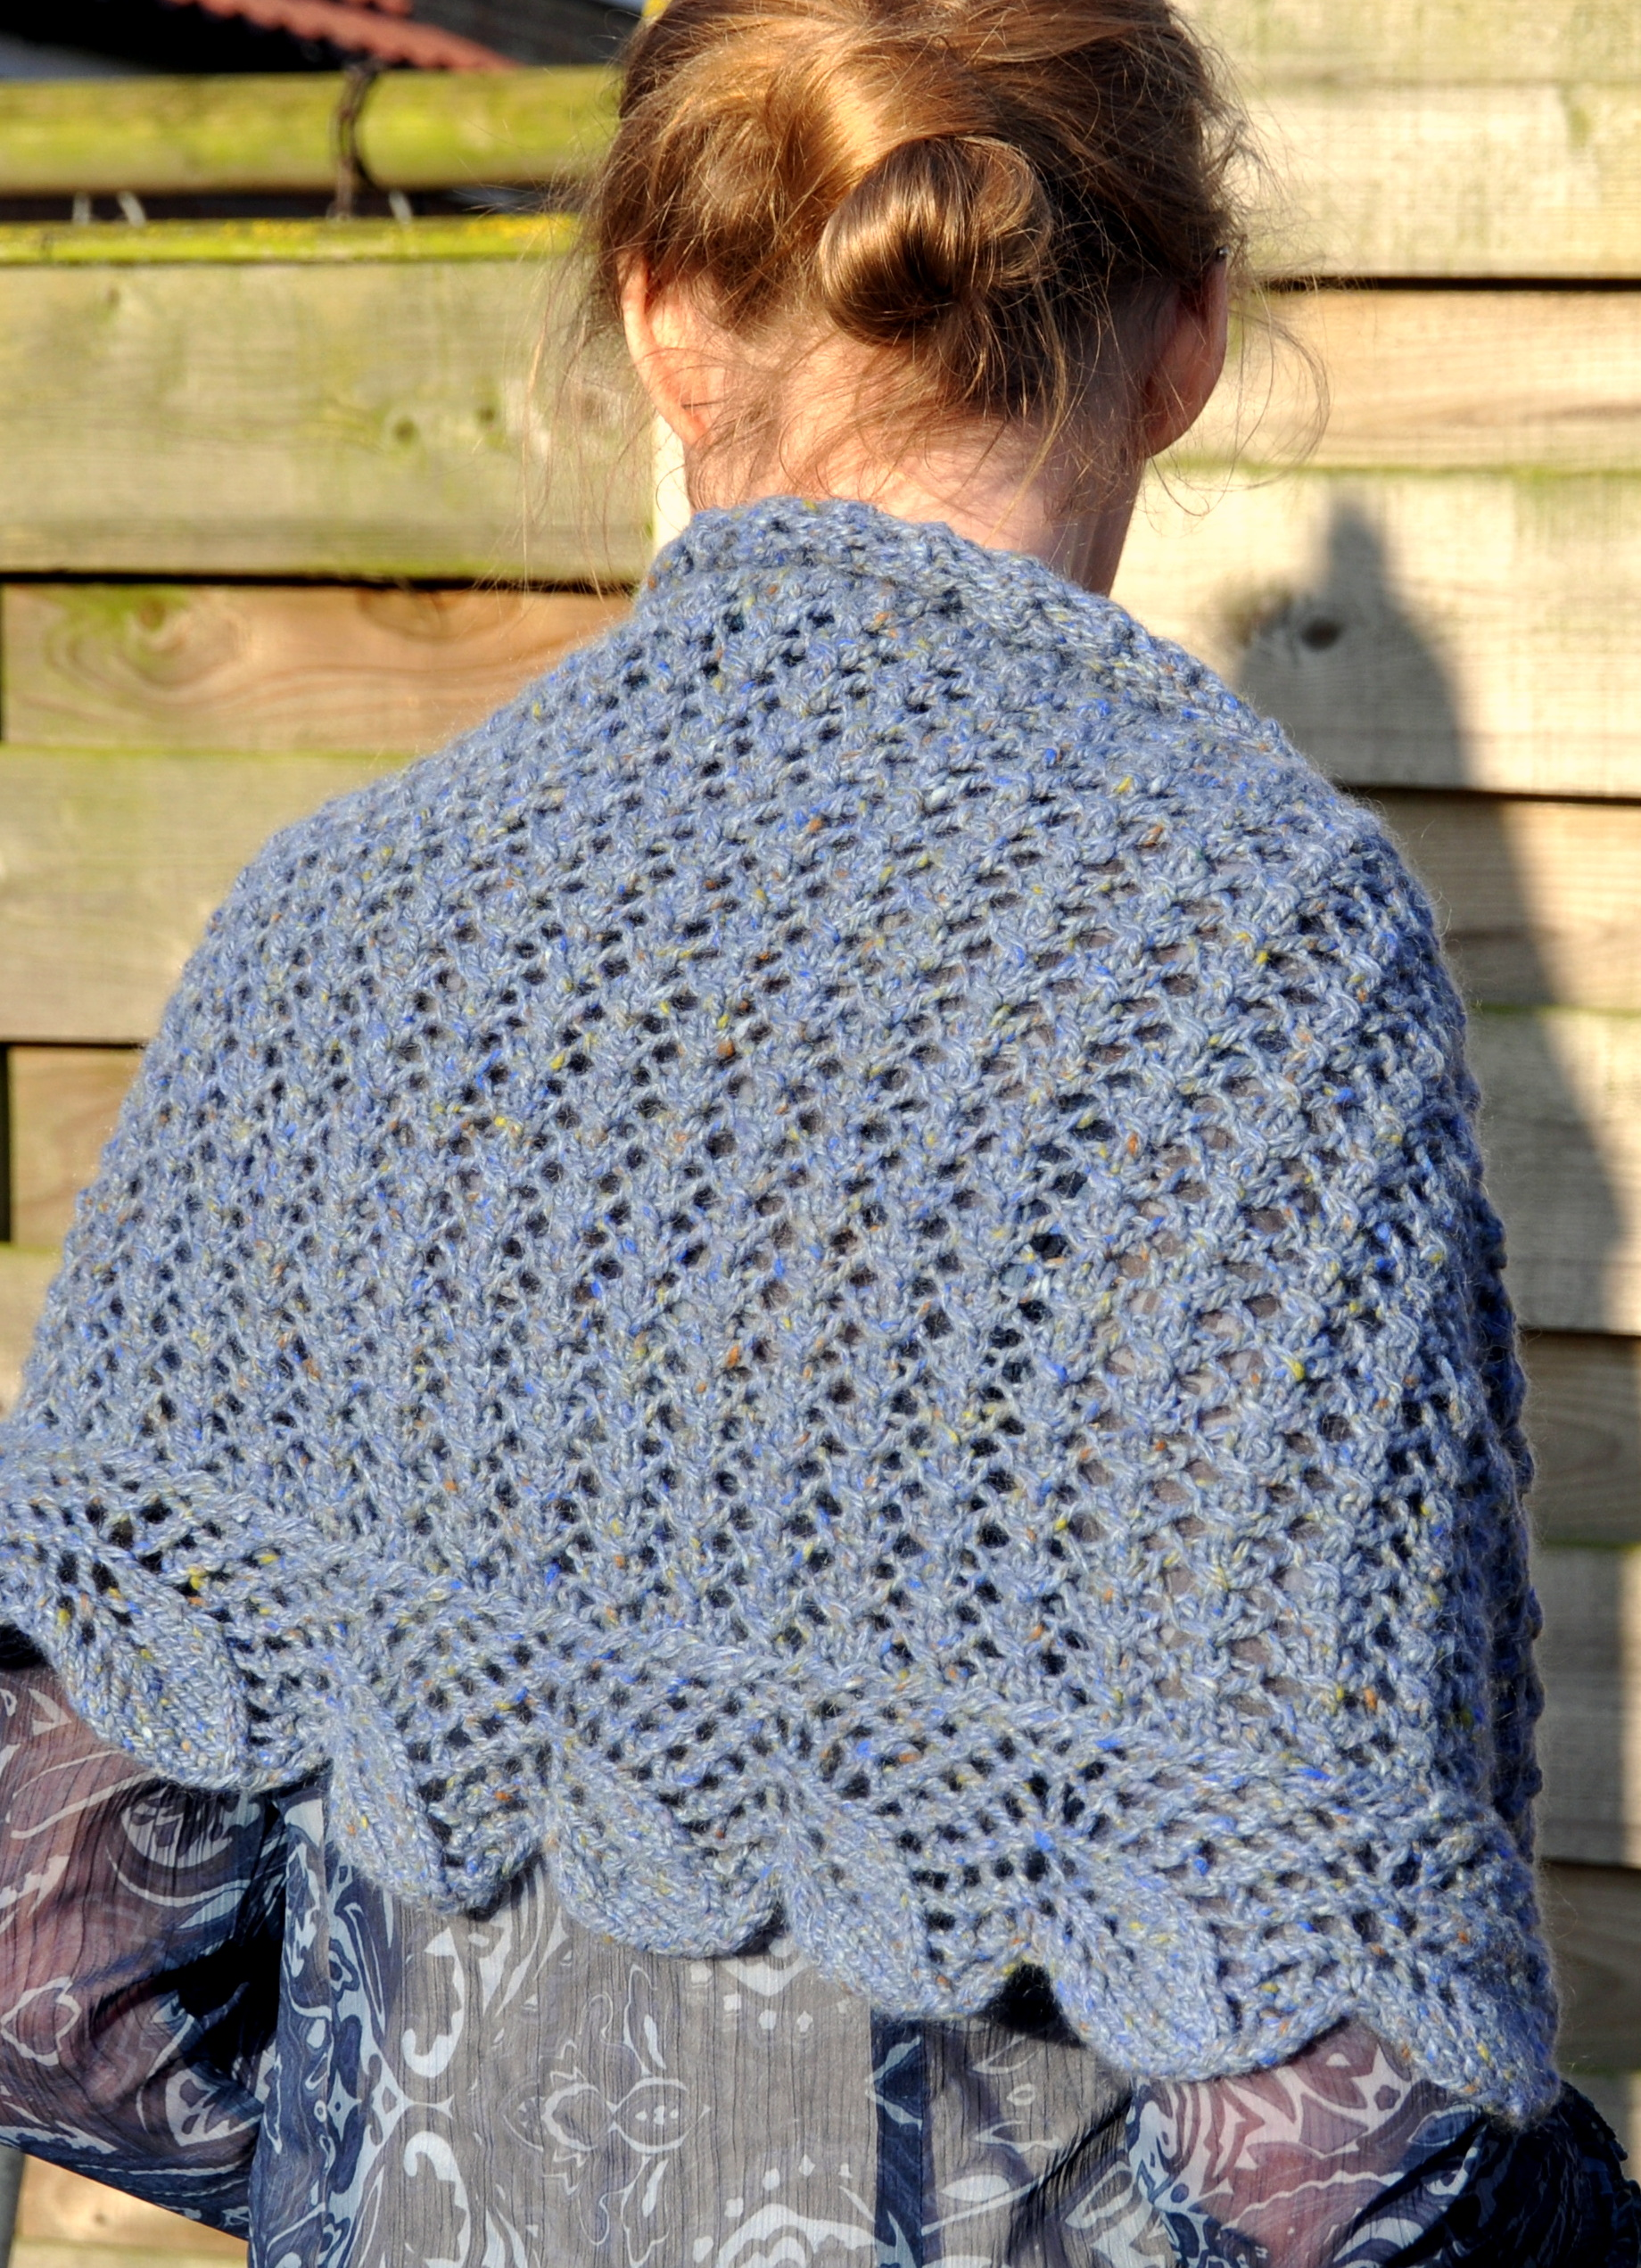 Falling Leaves shawl knitting pattern